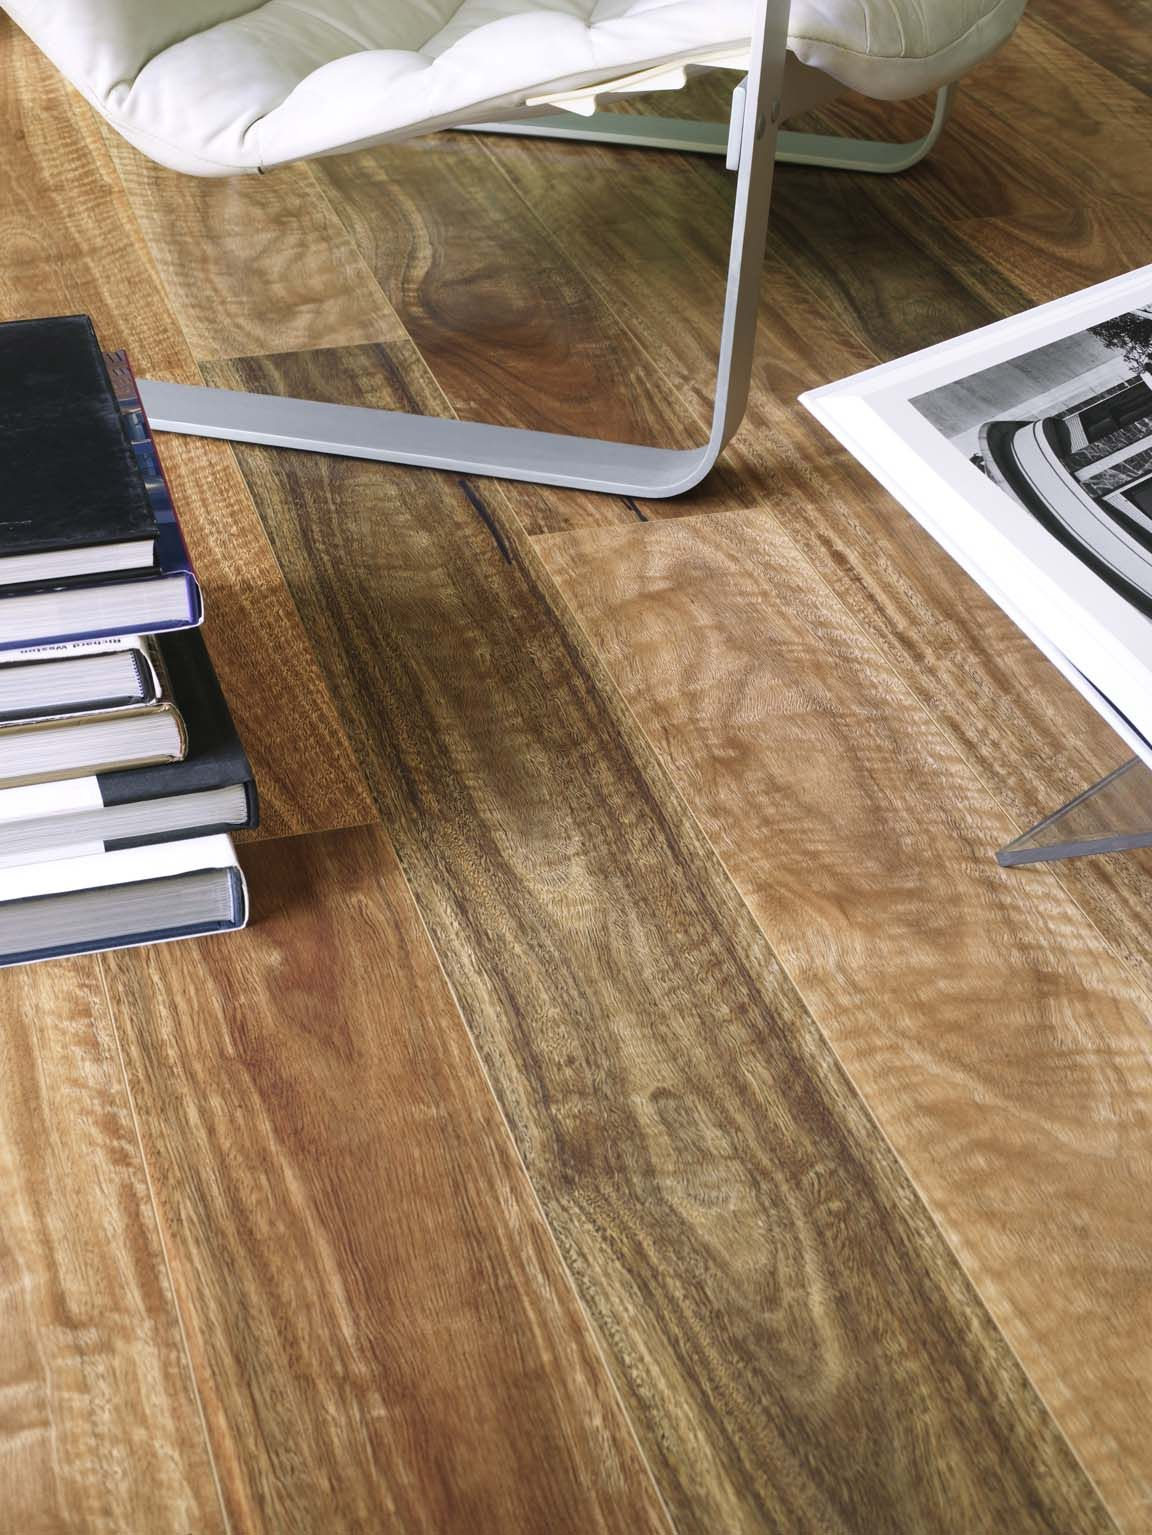 Spotted Gum Laminate - This Beautiful High Definition Laminate Flooring is from Belgium and available now & Spotted Gum Laminate - This Beautiful High Definition Laminate ...